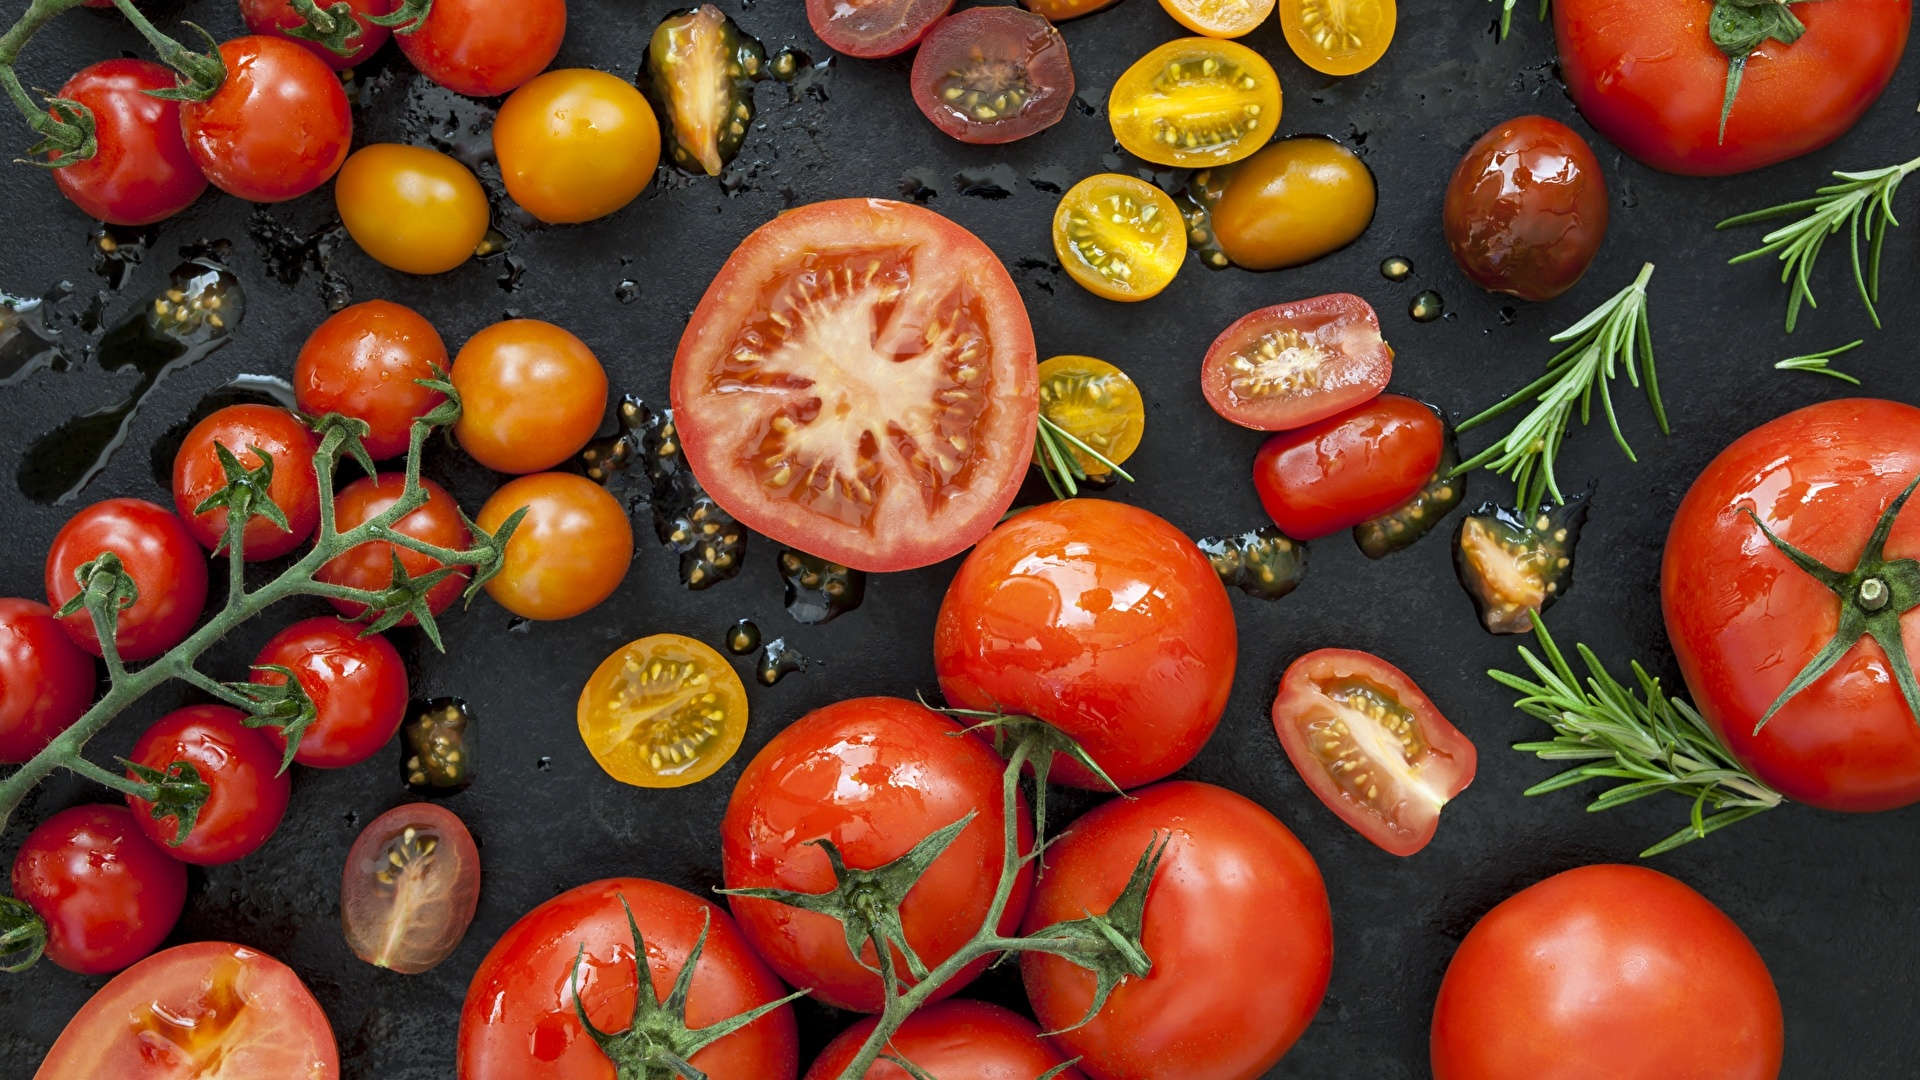 Tomatoes Download Wallpaper